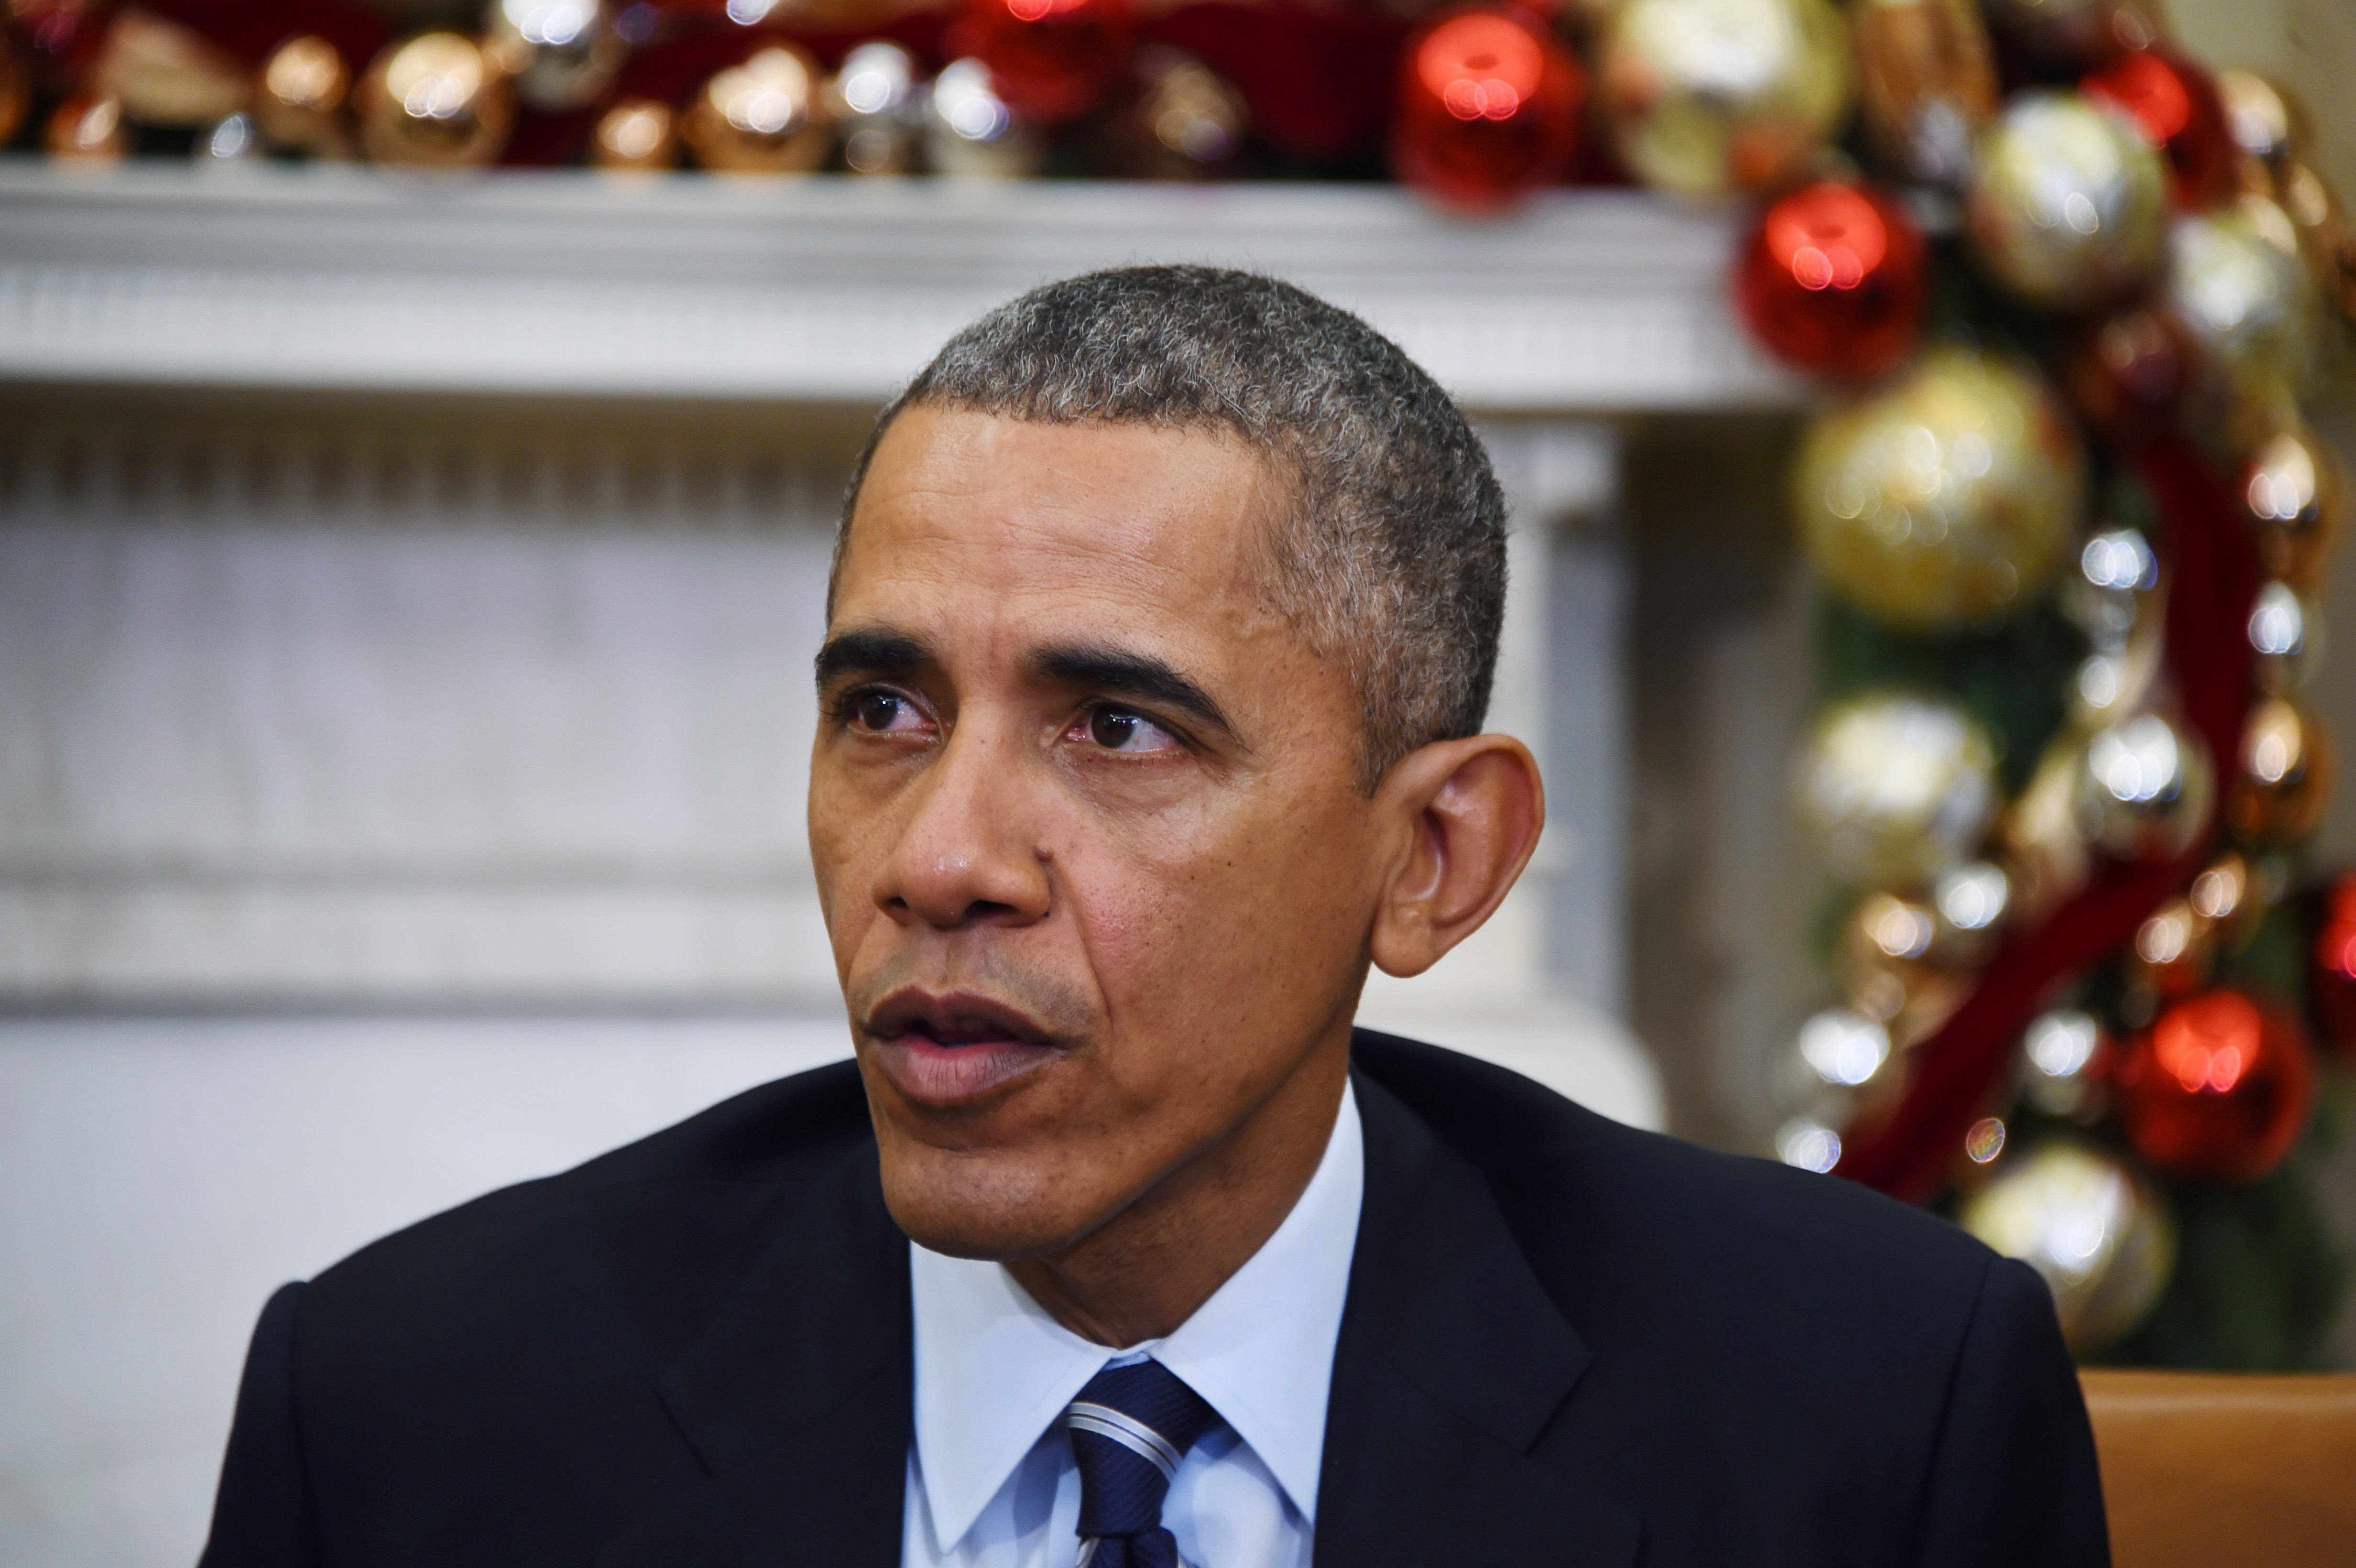 US President Barack Obama speaks about US gun violence at the White House on Dec. 3,